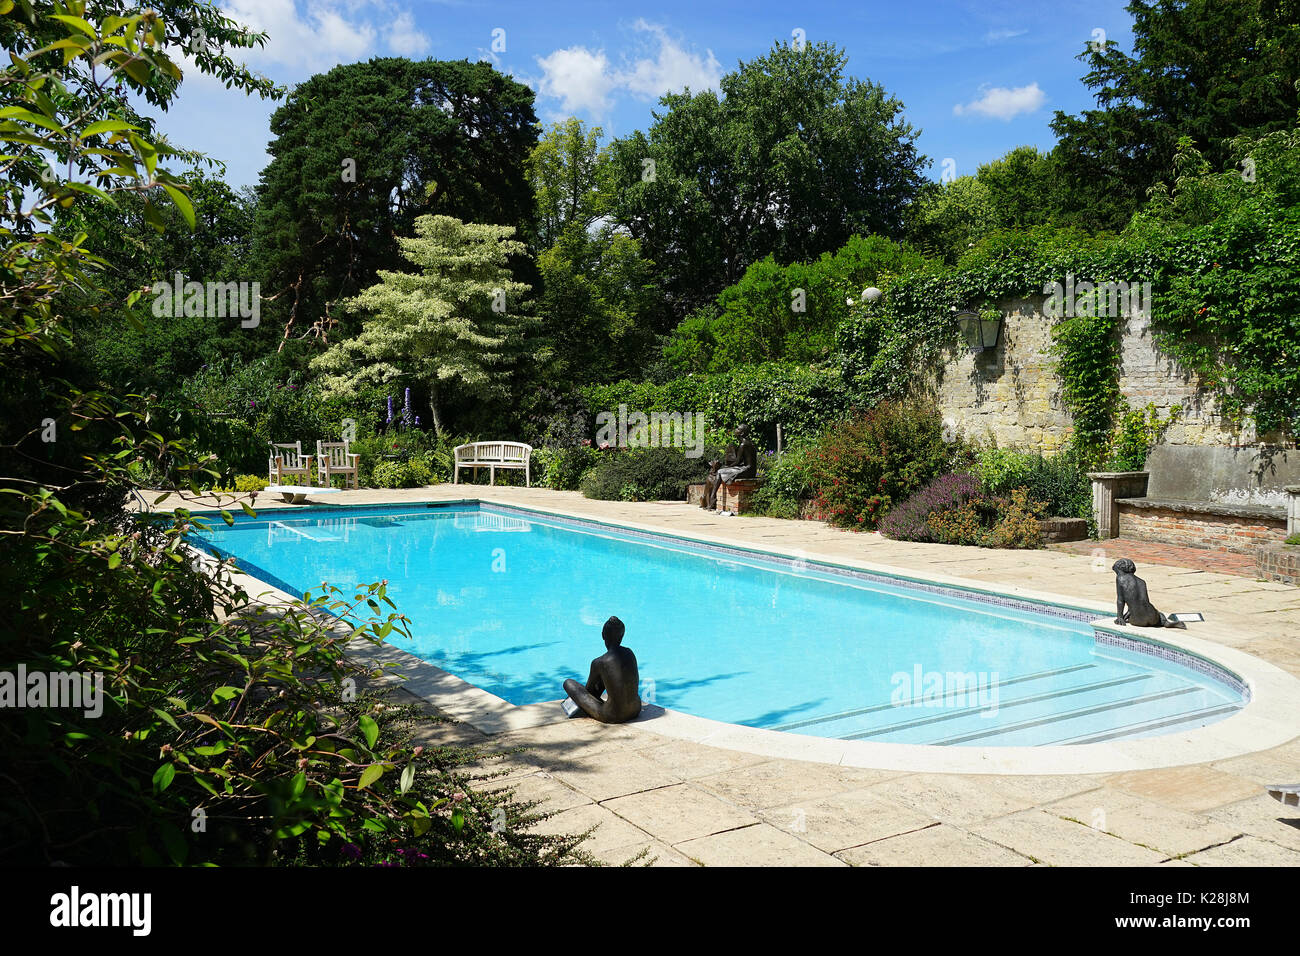 Garden swimming pool england stock photos garden for Garden city pool jobs